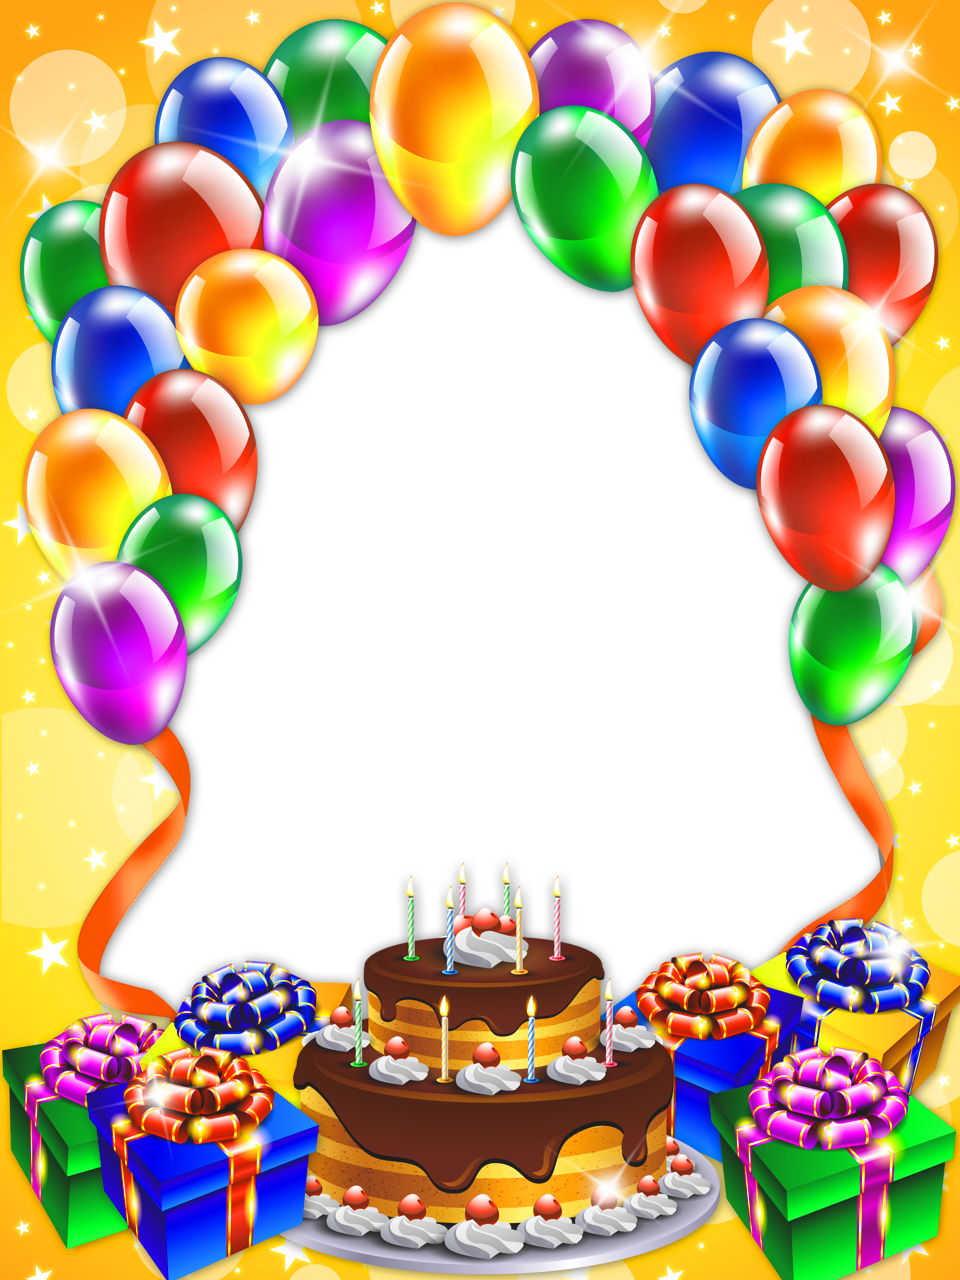 Happy transparent frame gallery. Birthday border png